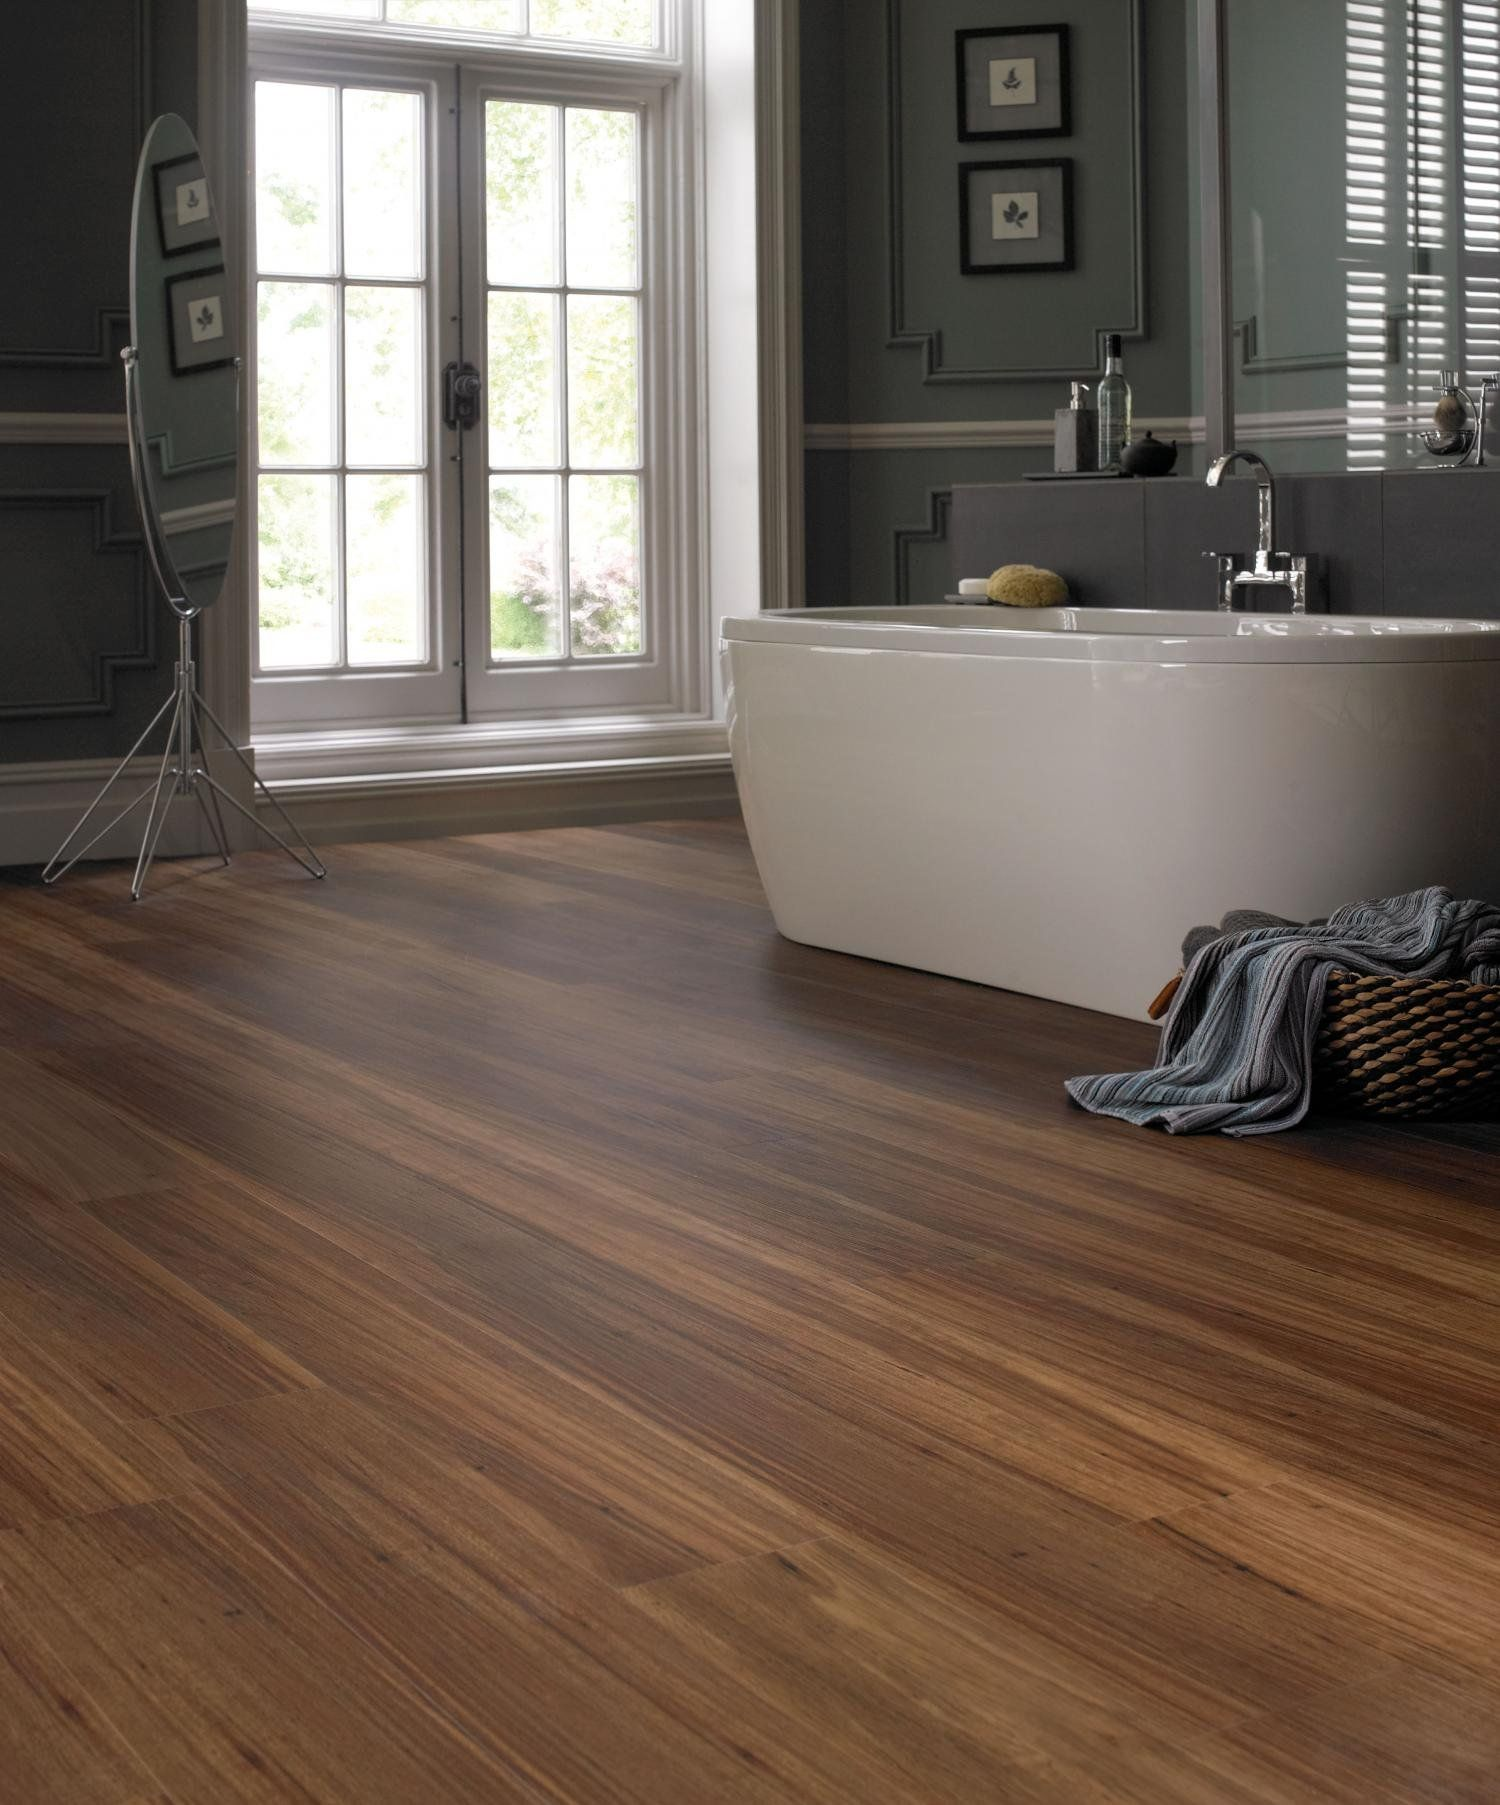 Spectacular wood look tile flooring bathroom design with - Laminate tiles for bathroom walls ...